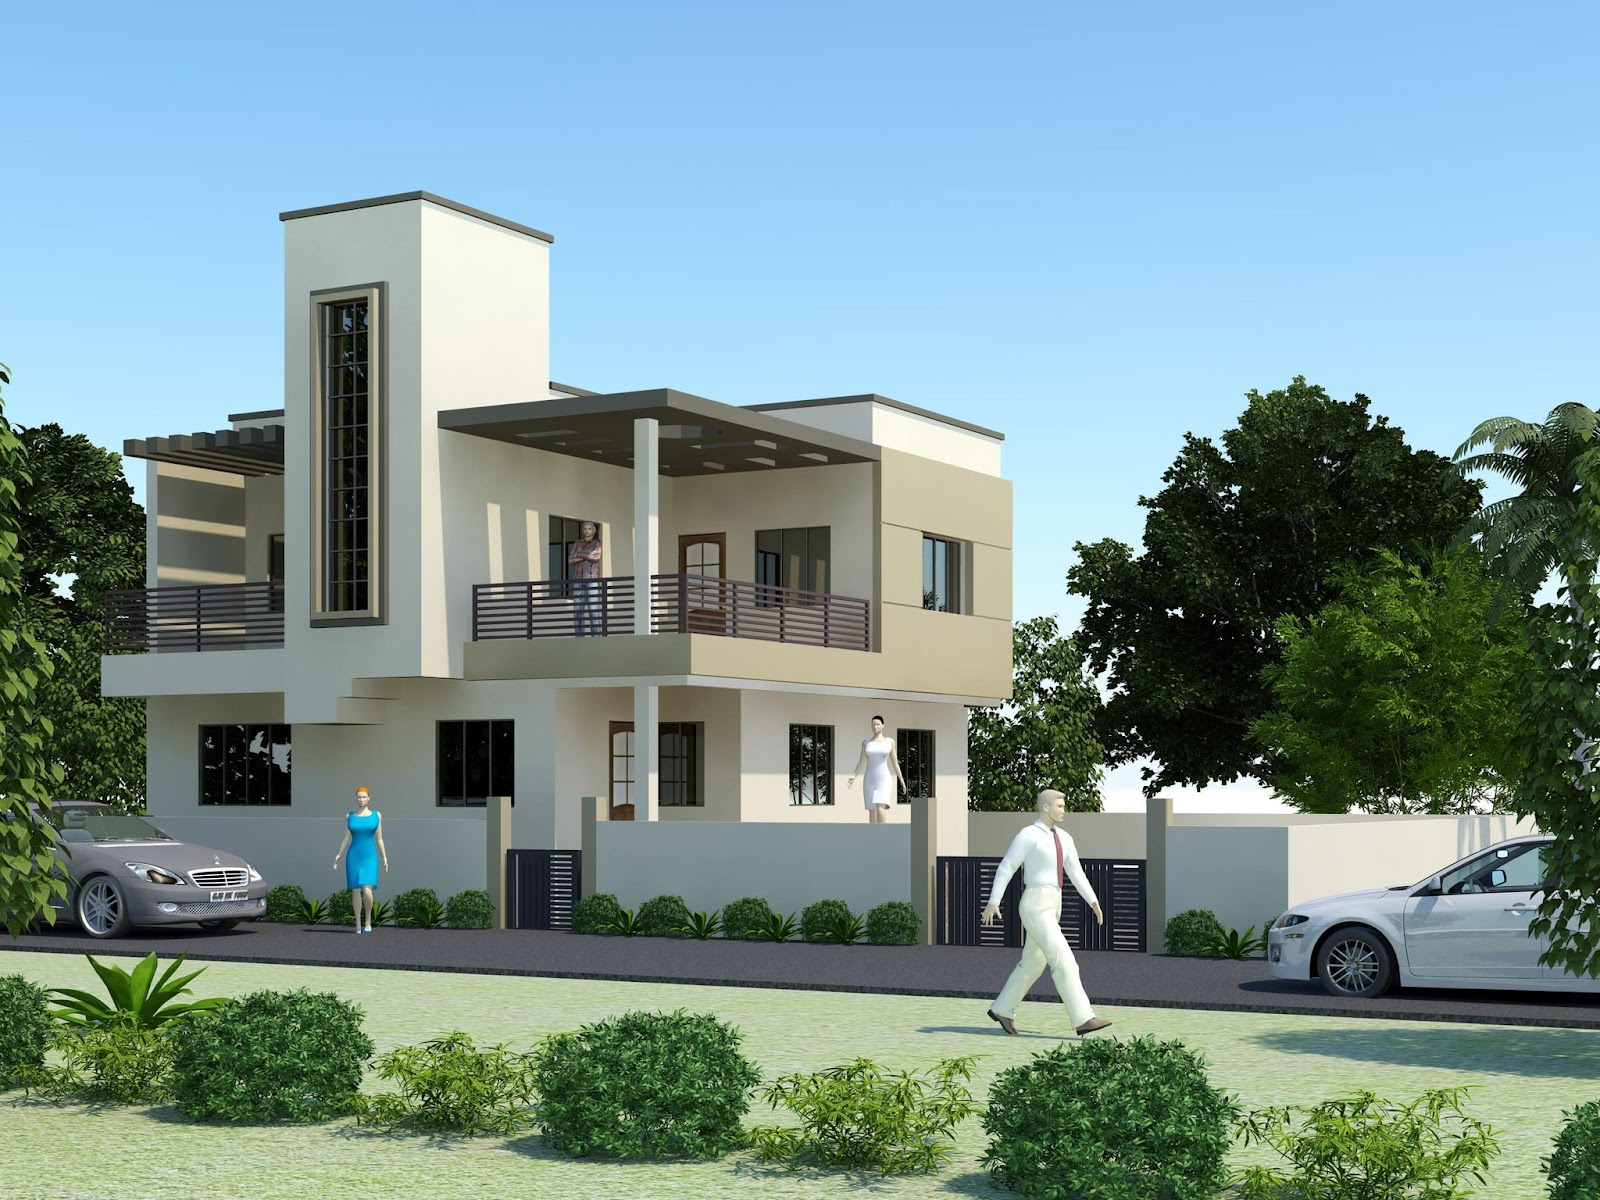 modern homes exterior designs front views pictures On home designs views front